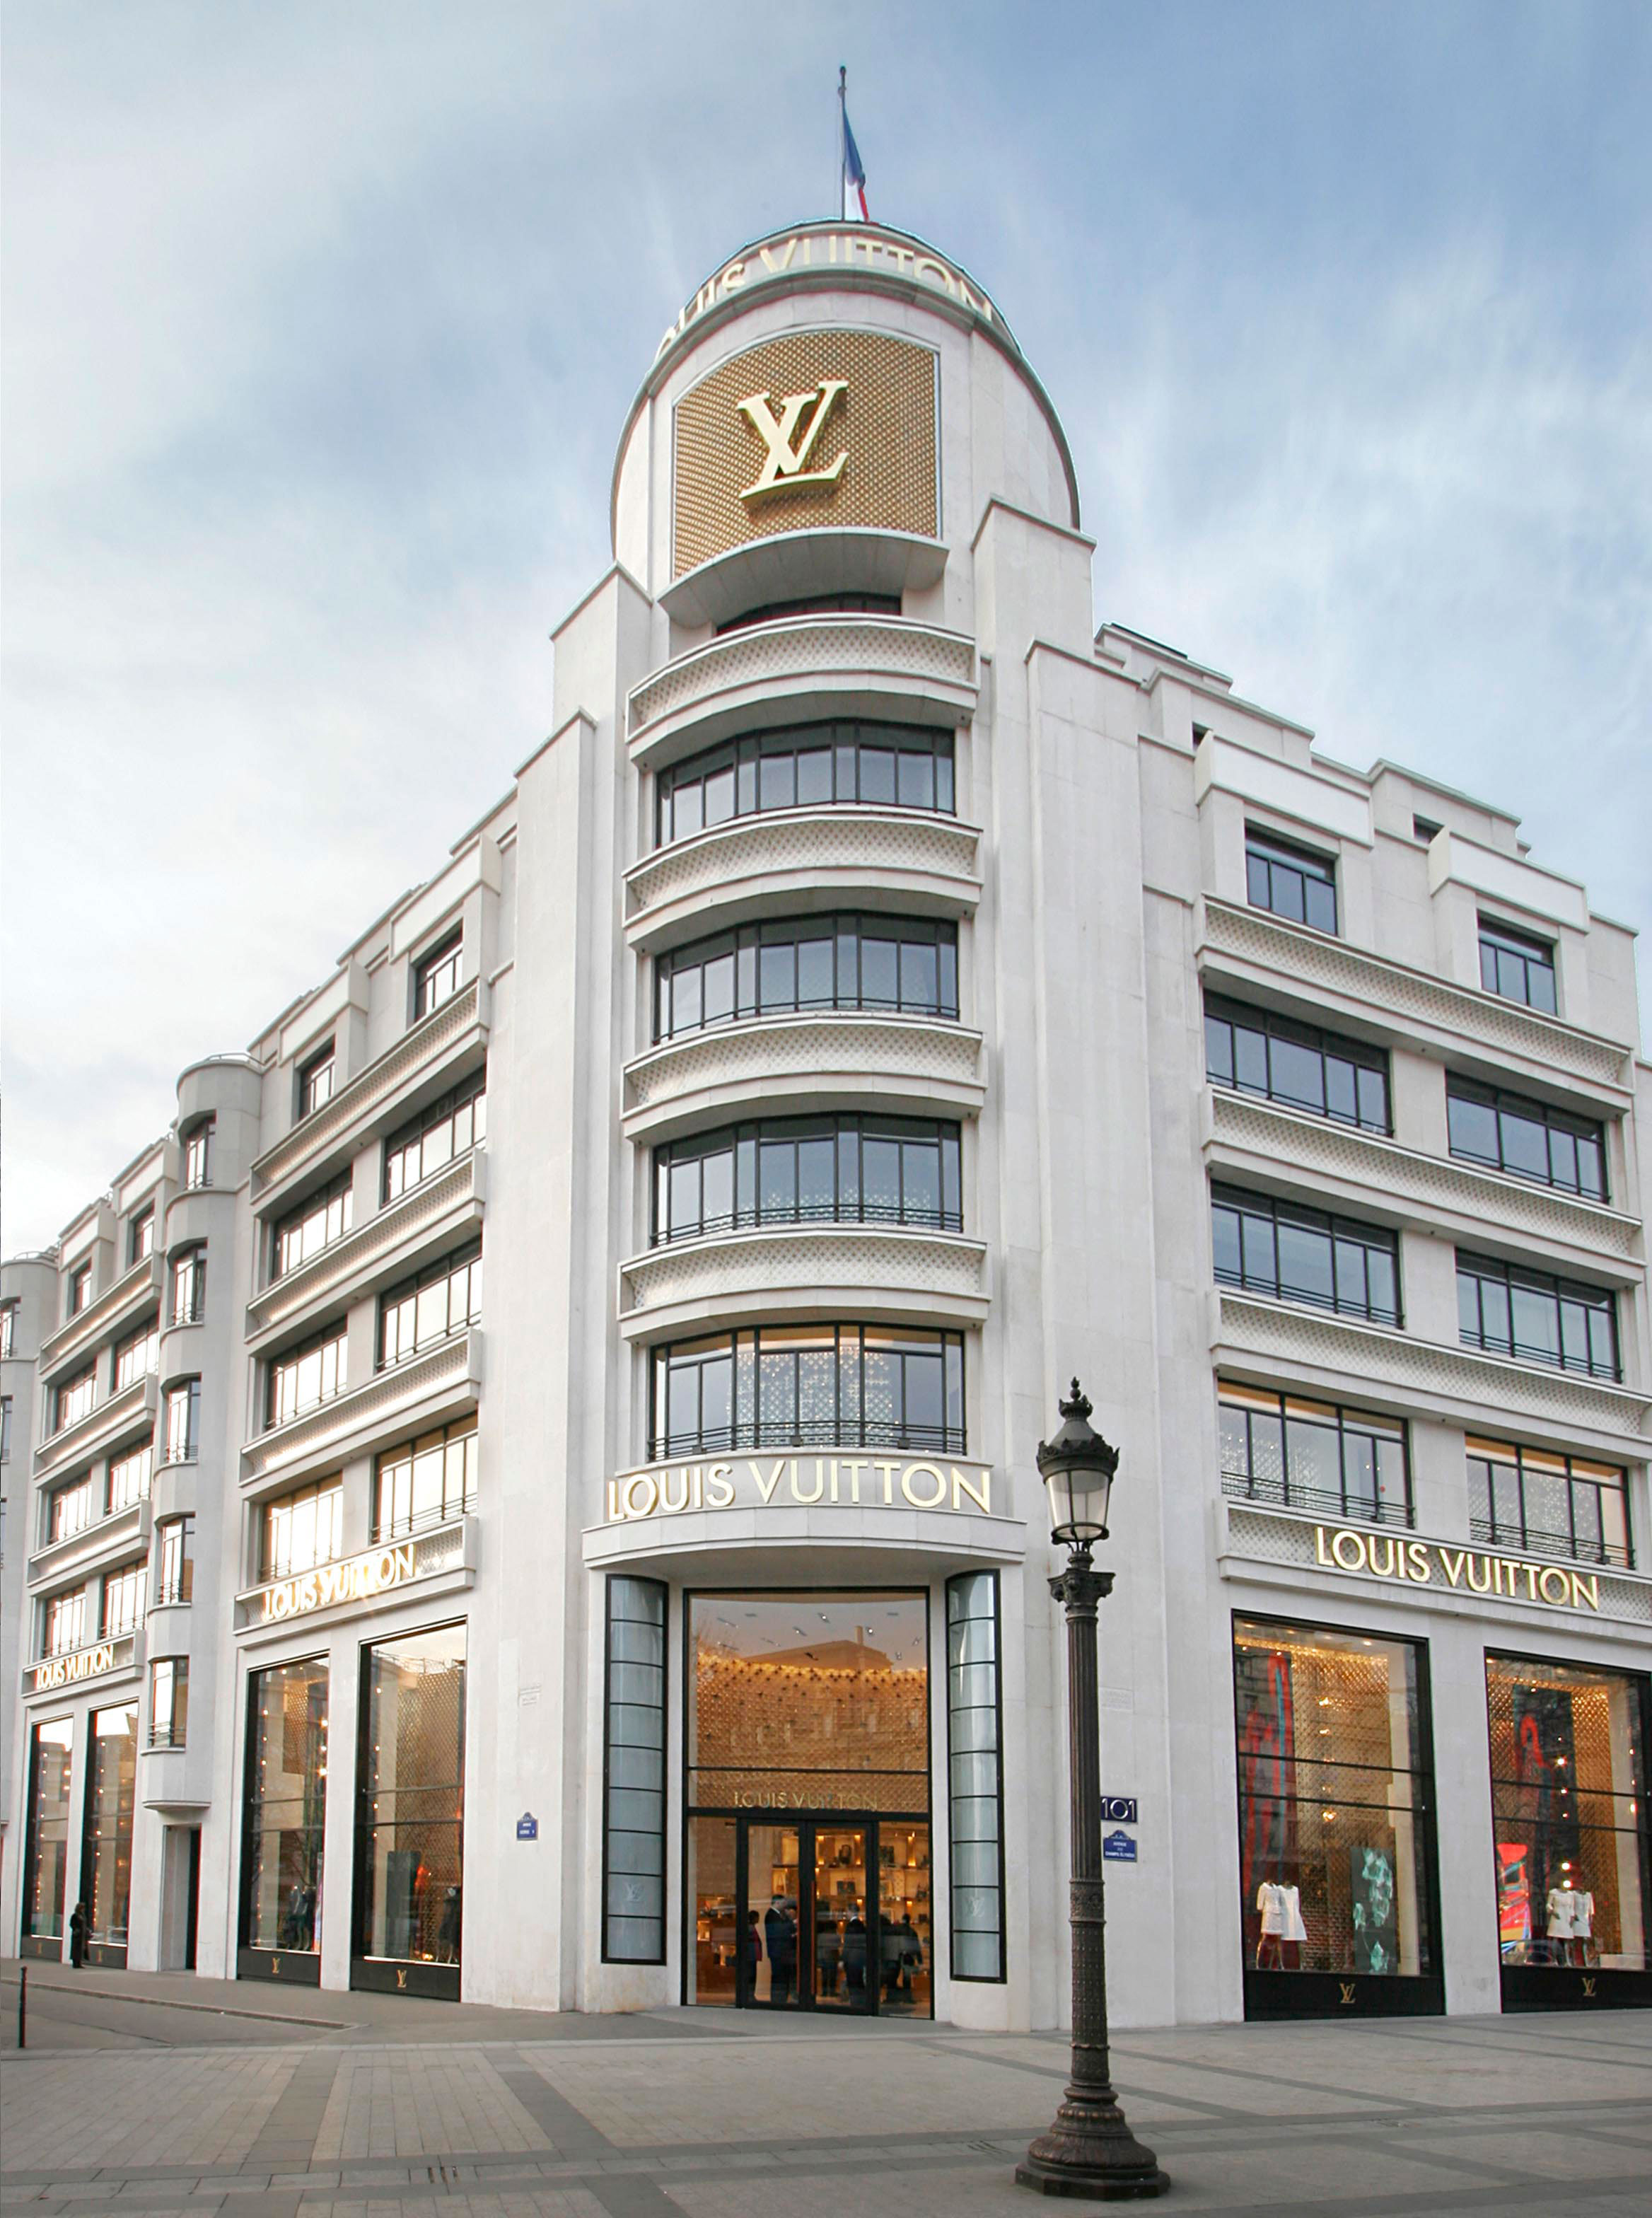 135032fe8 LOUIS VUITTON, Champs Elysees, Paris - Carbondale